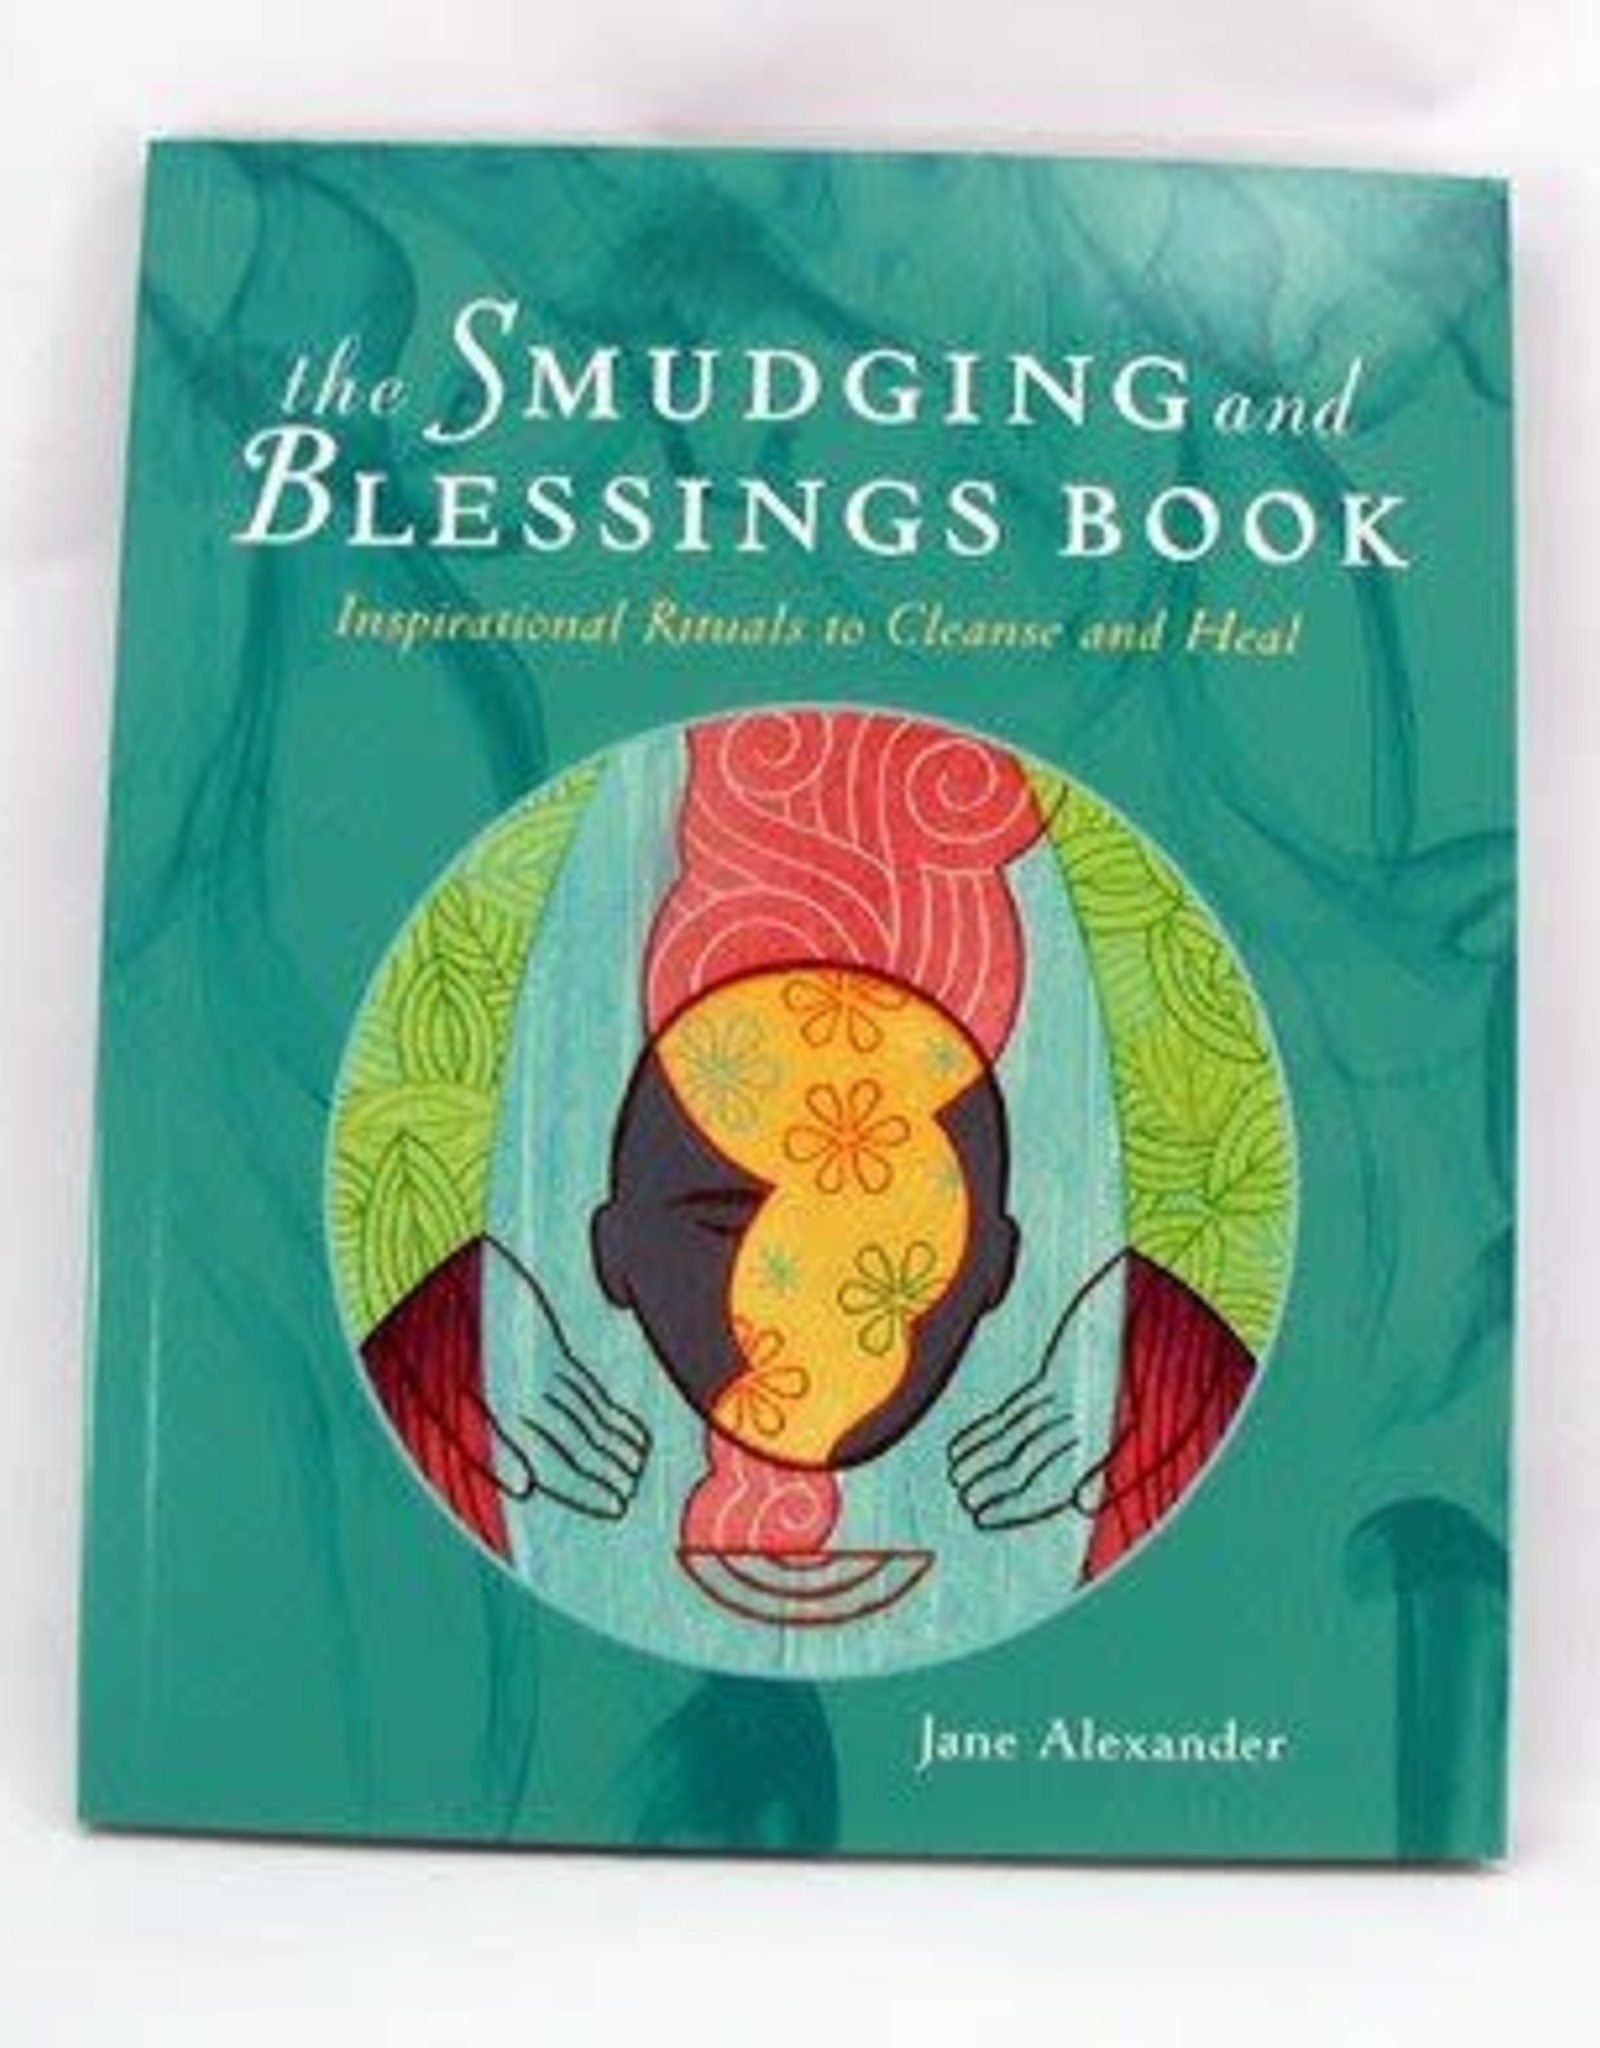 Jane Alexander Smudging and Blessings Book by Jane Alexander